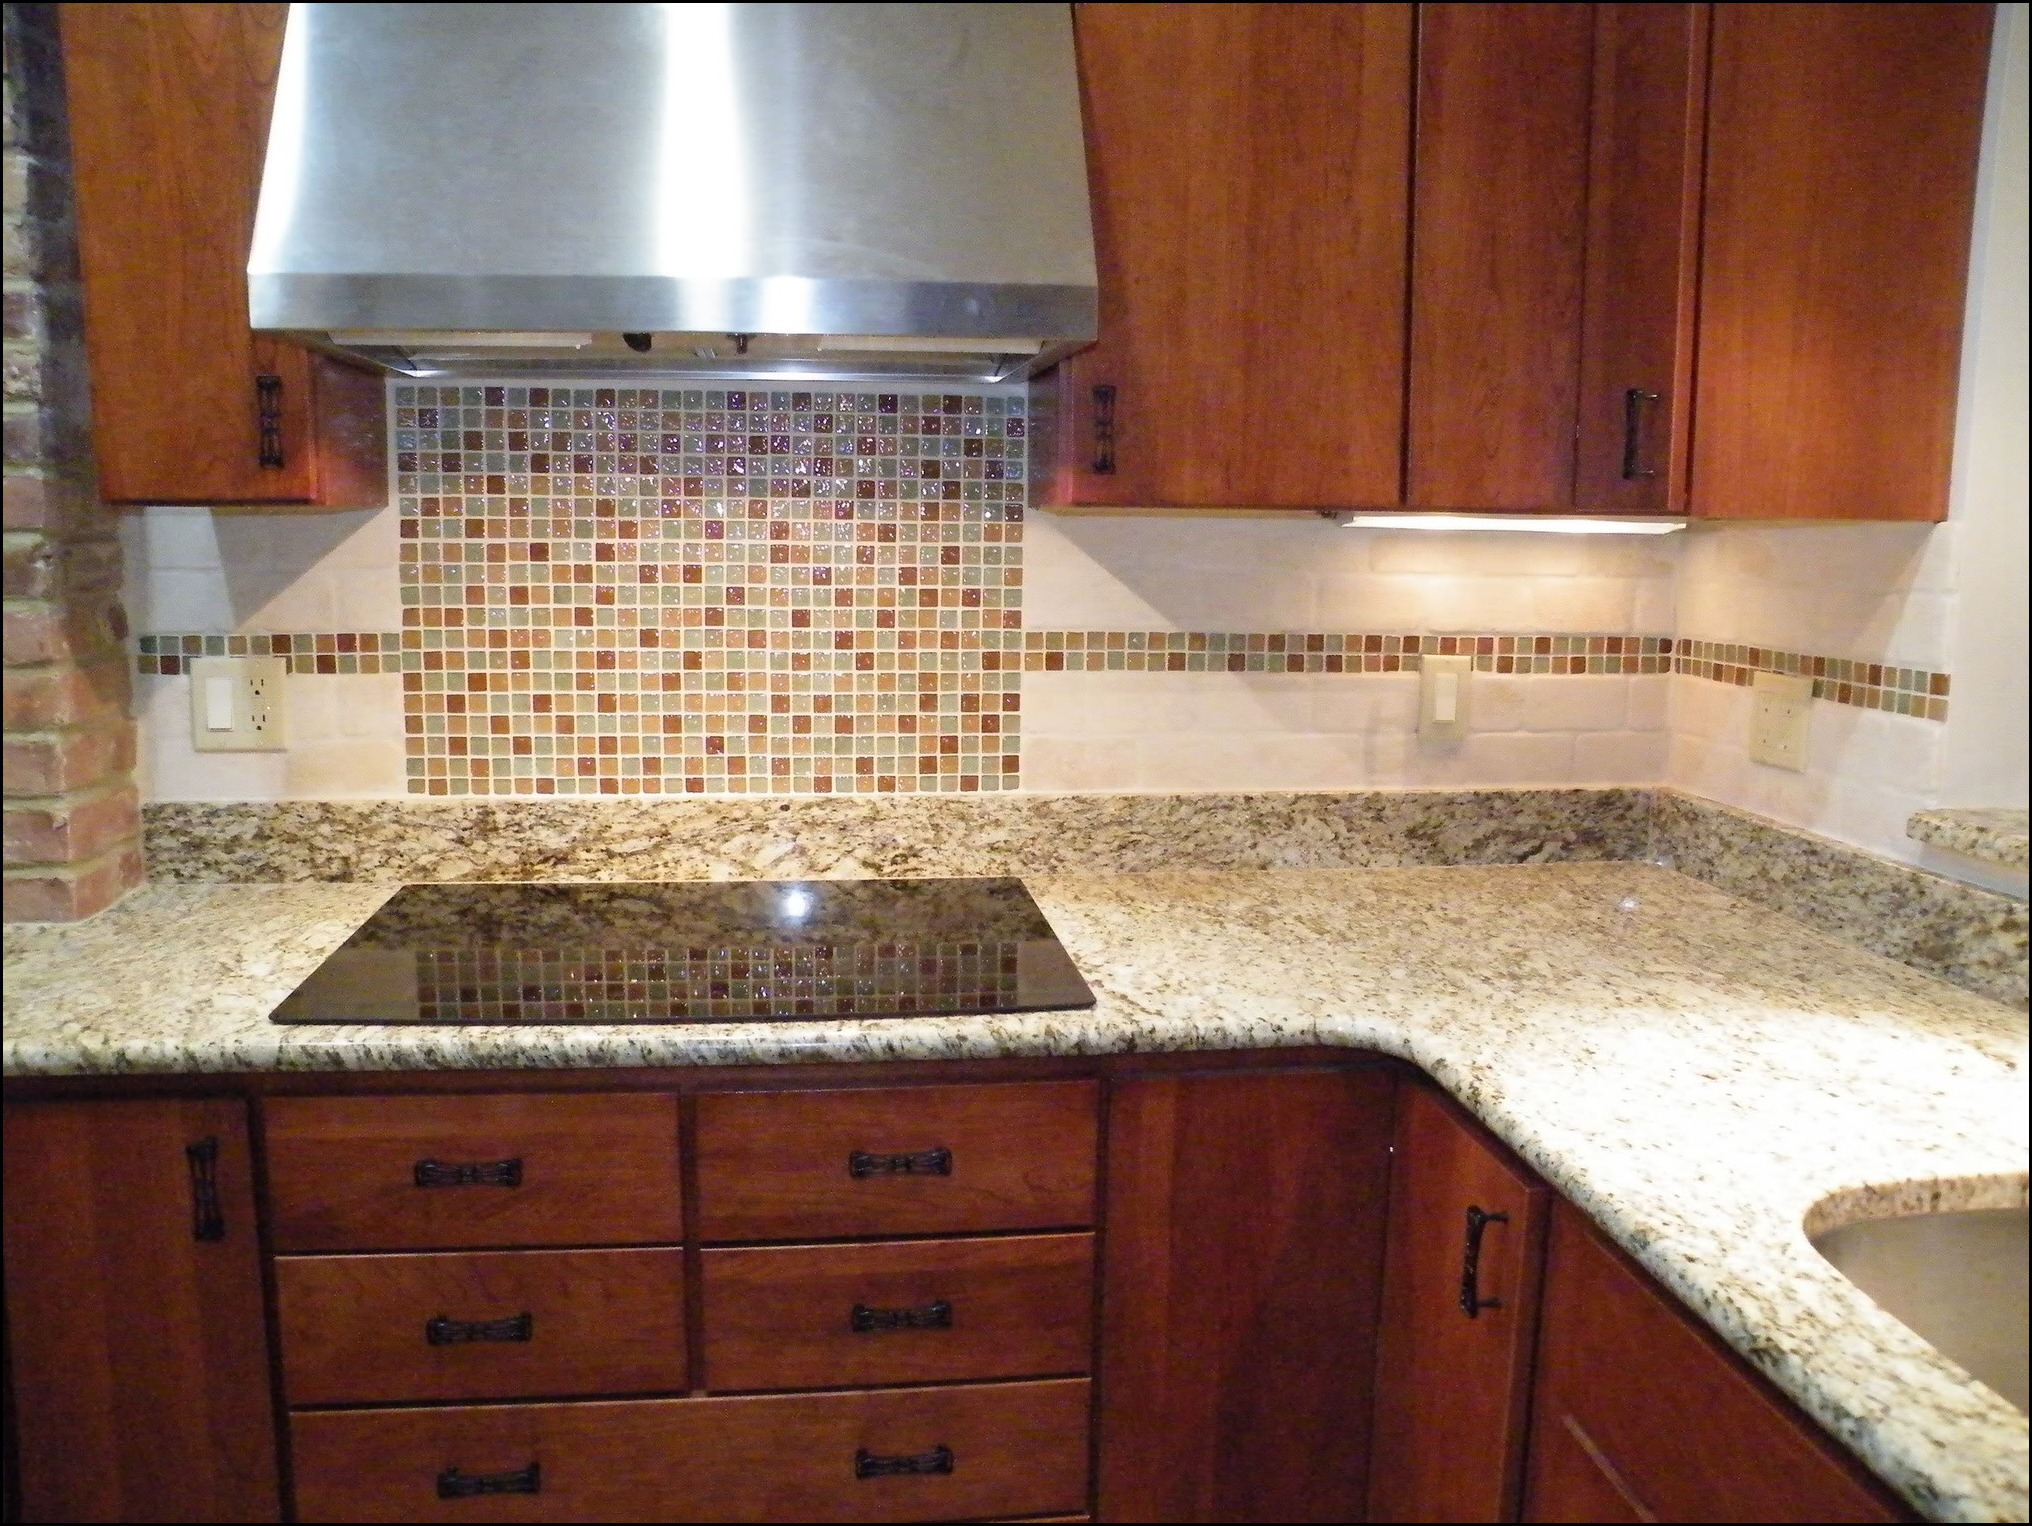 Mosaic tile kitchen backsplash tips dwelling style tips modern kitchen backsplash designs is a tile and sleek weve got backsplash on a castle country kitchen tile ideas inspiration pictures will support you dailygadgetfo Gallery